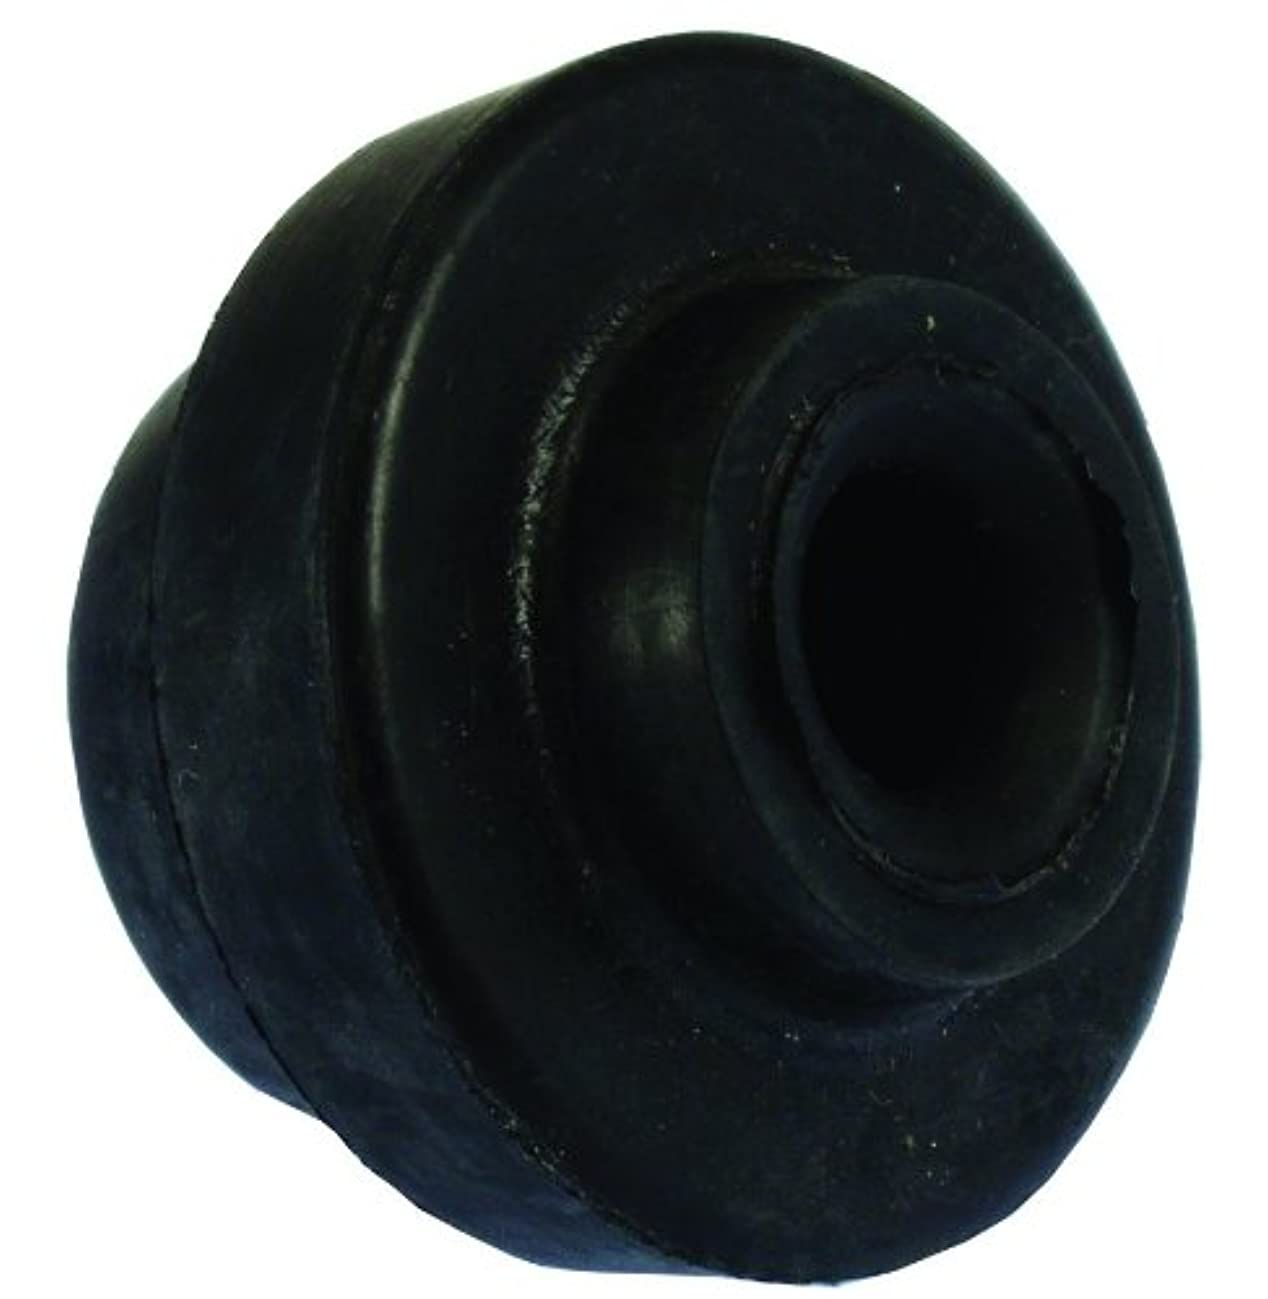 JR Products 10404 Rubber Socket for Plunger Door Holder